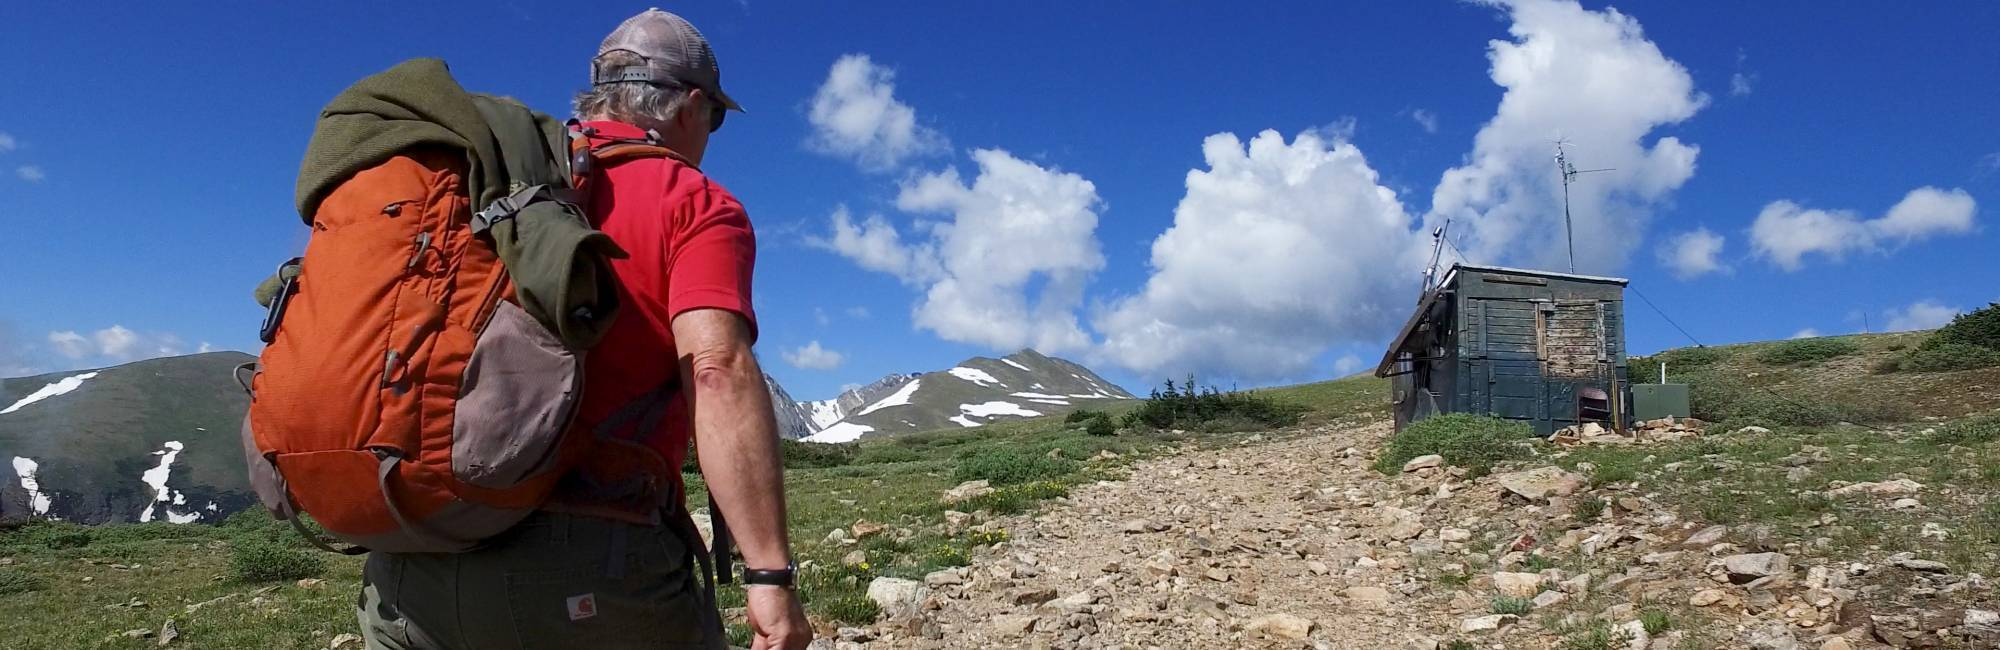 CIRES scientist Duane Kitzis approaching NOAA's Niwot Ridge sampling station in the mountains above Boulder Colorado.